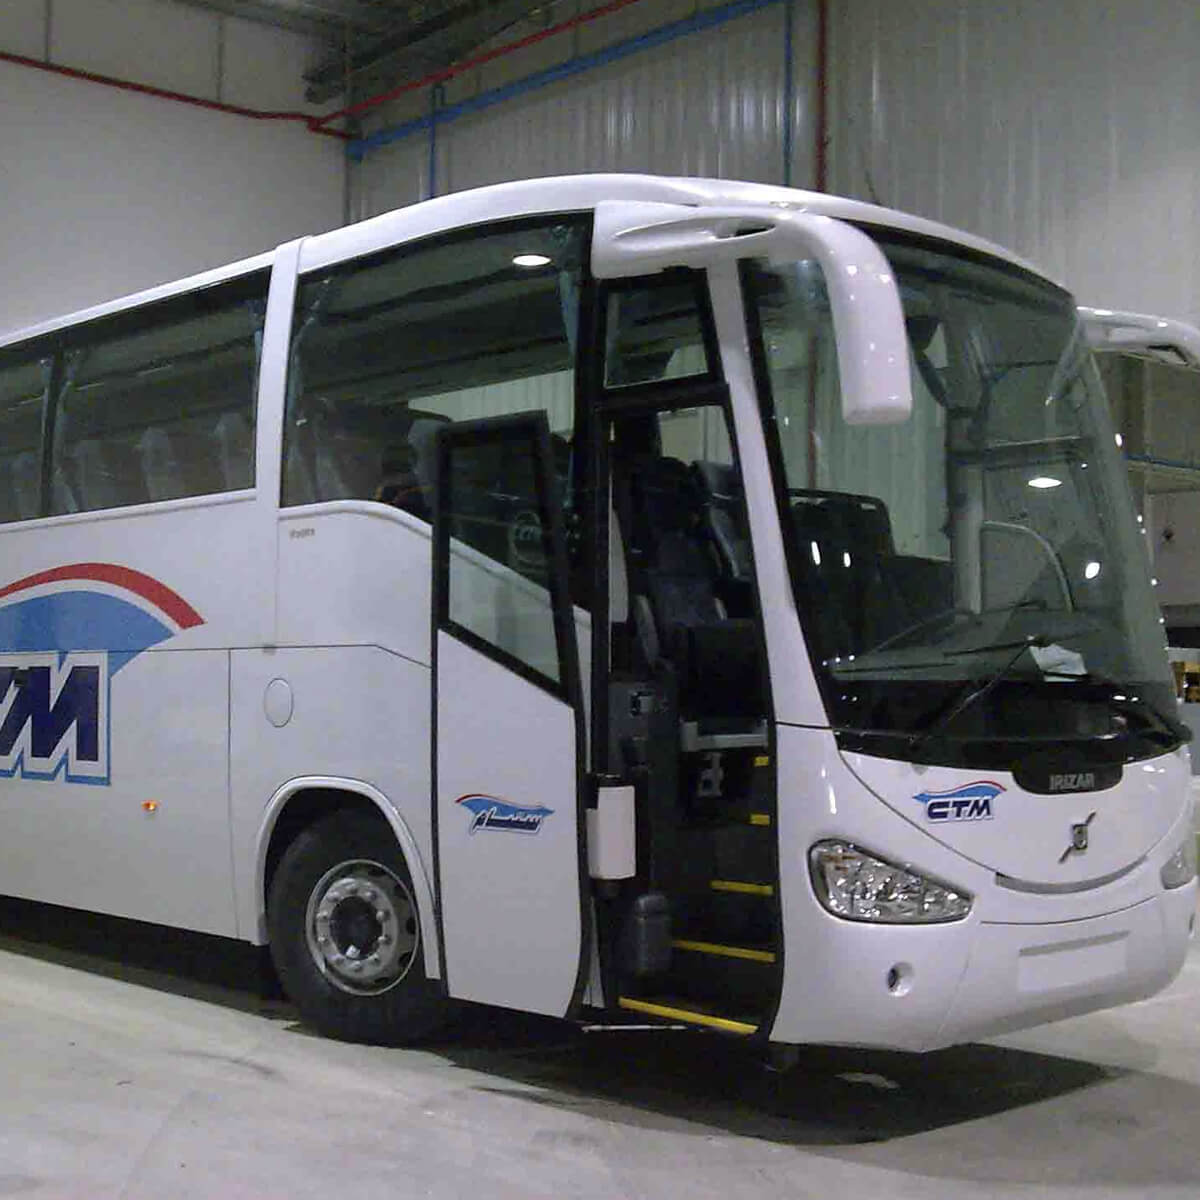 Car Rental 8 Travel Tips Deals Home: Traveling Morocco By Bus, Tips, Safety And Tickets